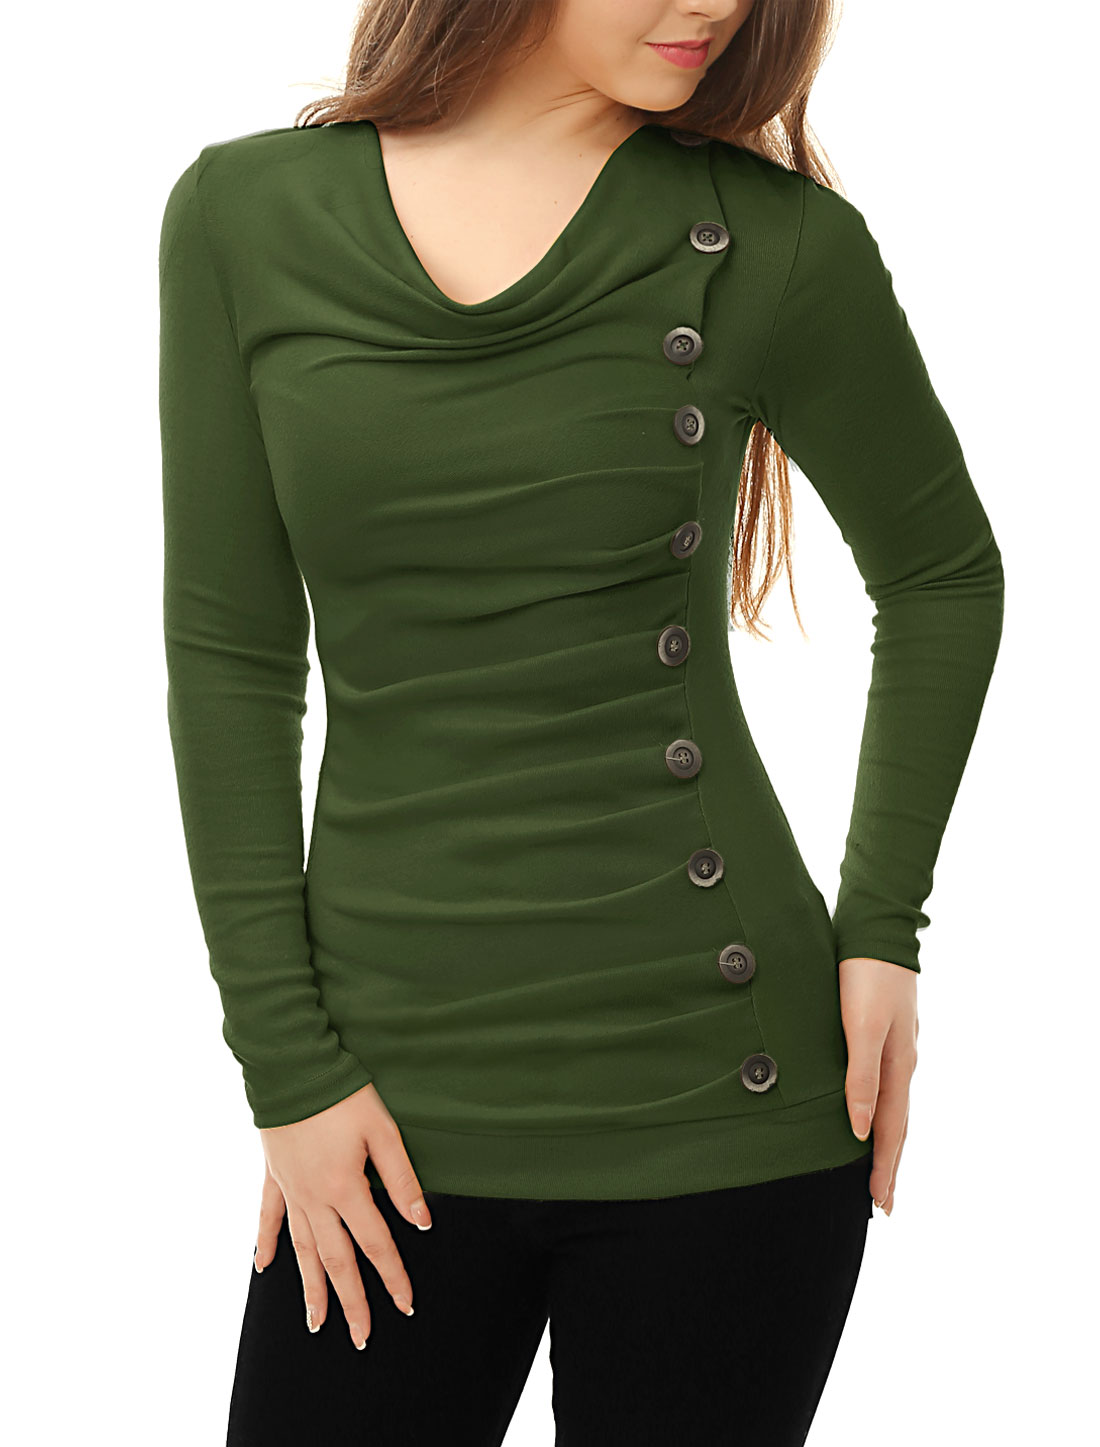 Women Cowl Neck Long Sleeves Buttons Decor Ruched Top Green XS